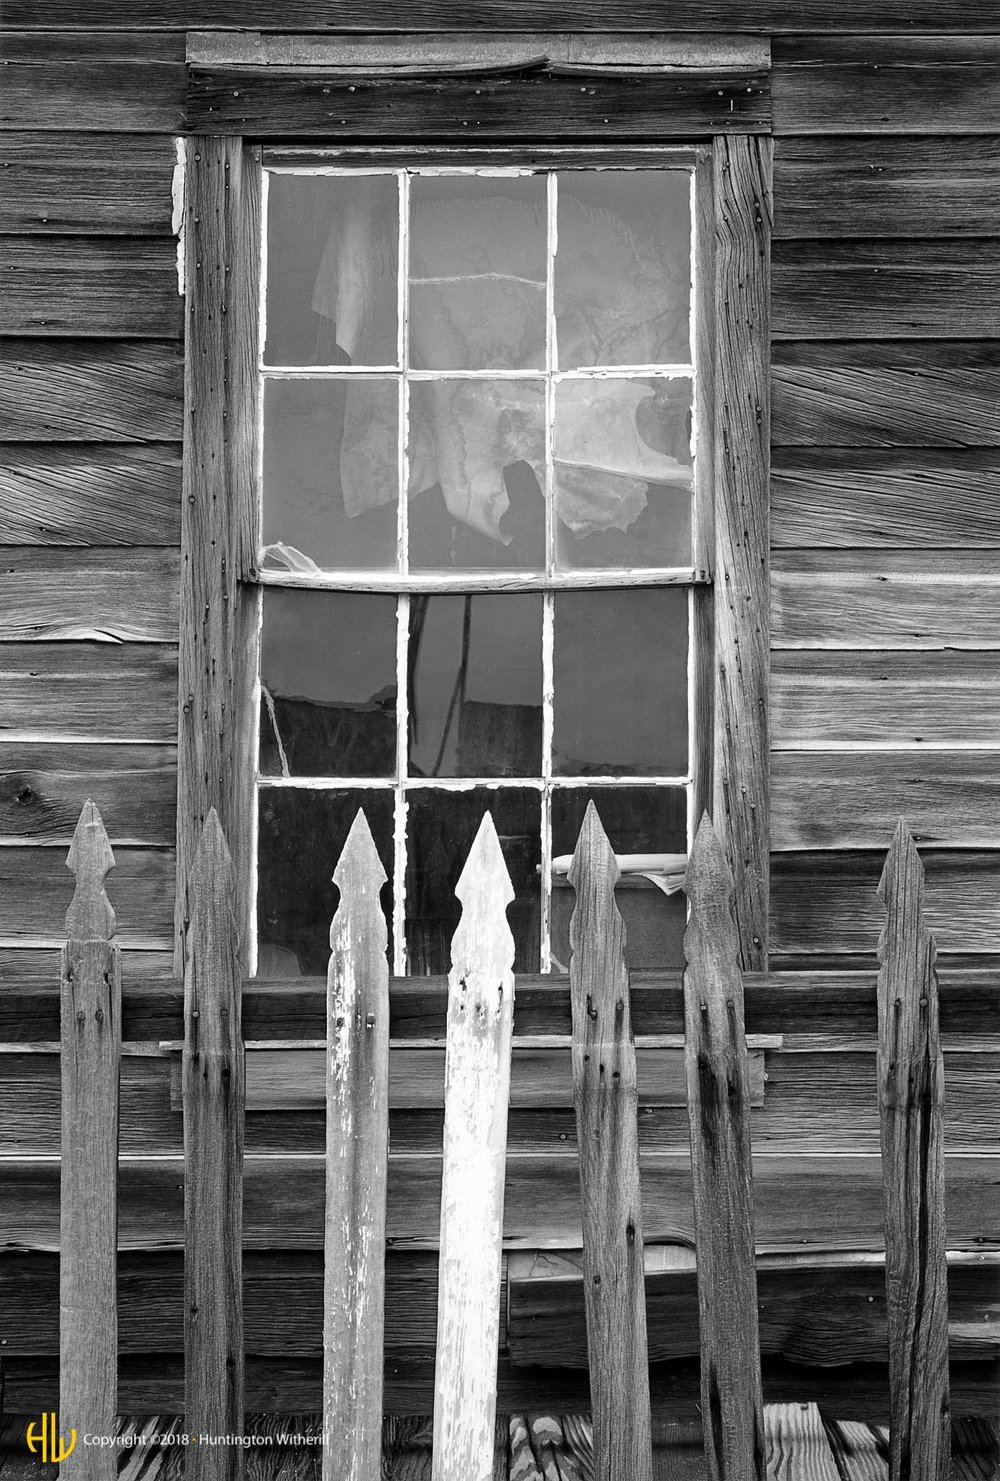 Window and Fence, Bodie California, 1983